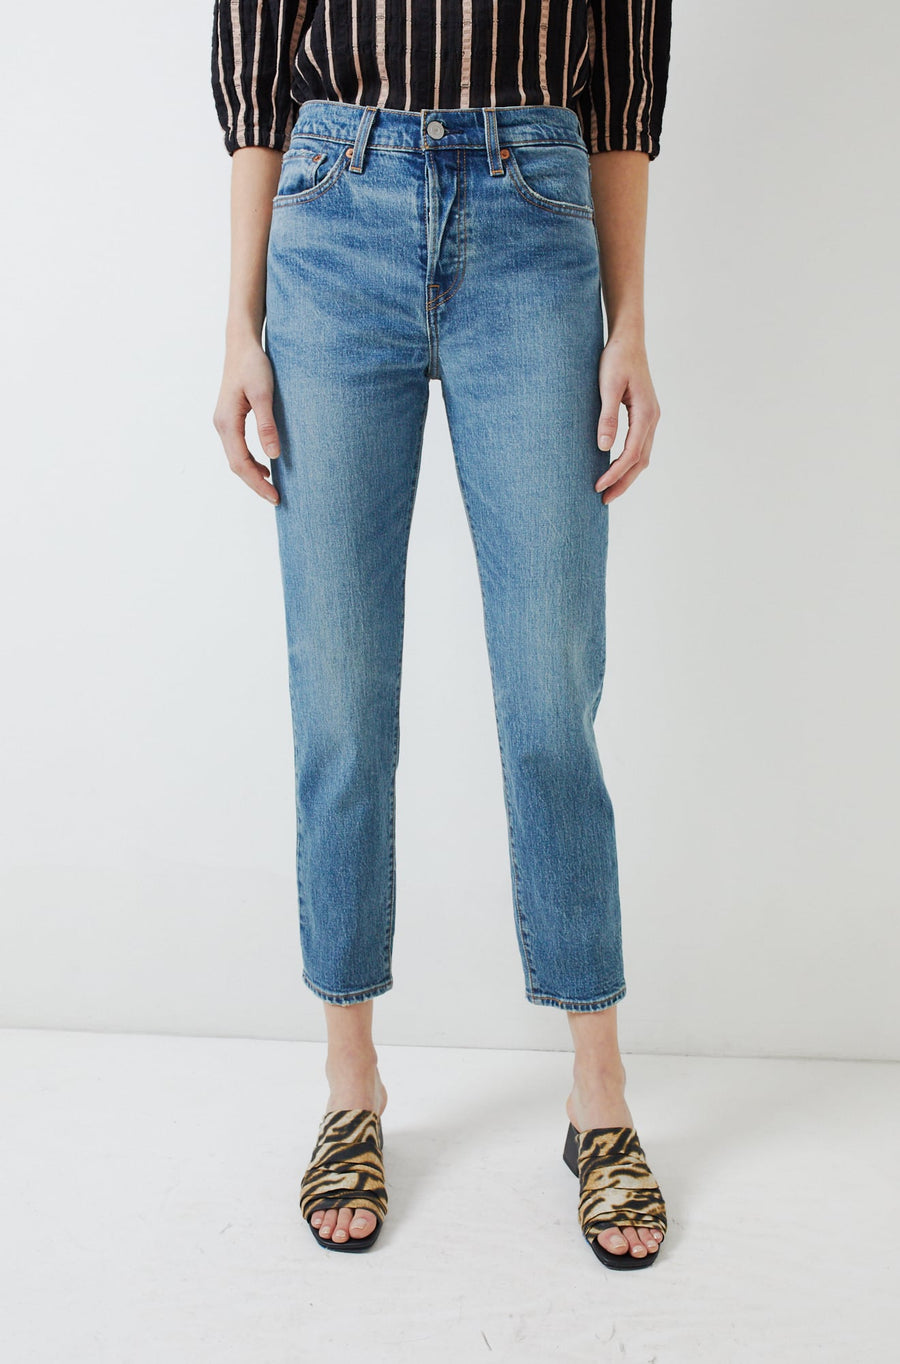 Wedgie Icon Fit Jean-these dreams